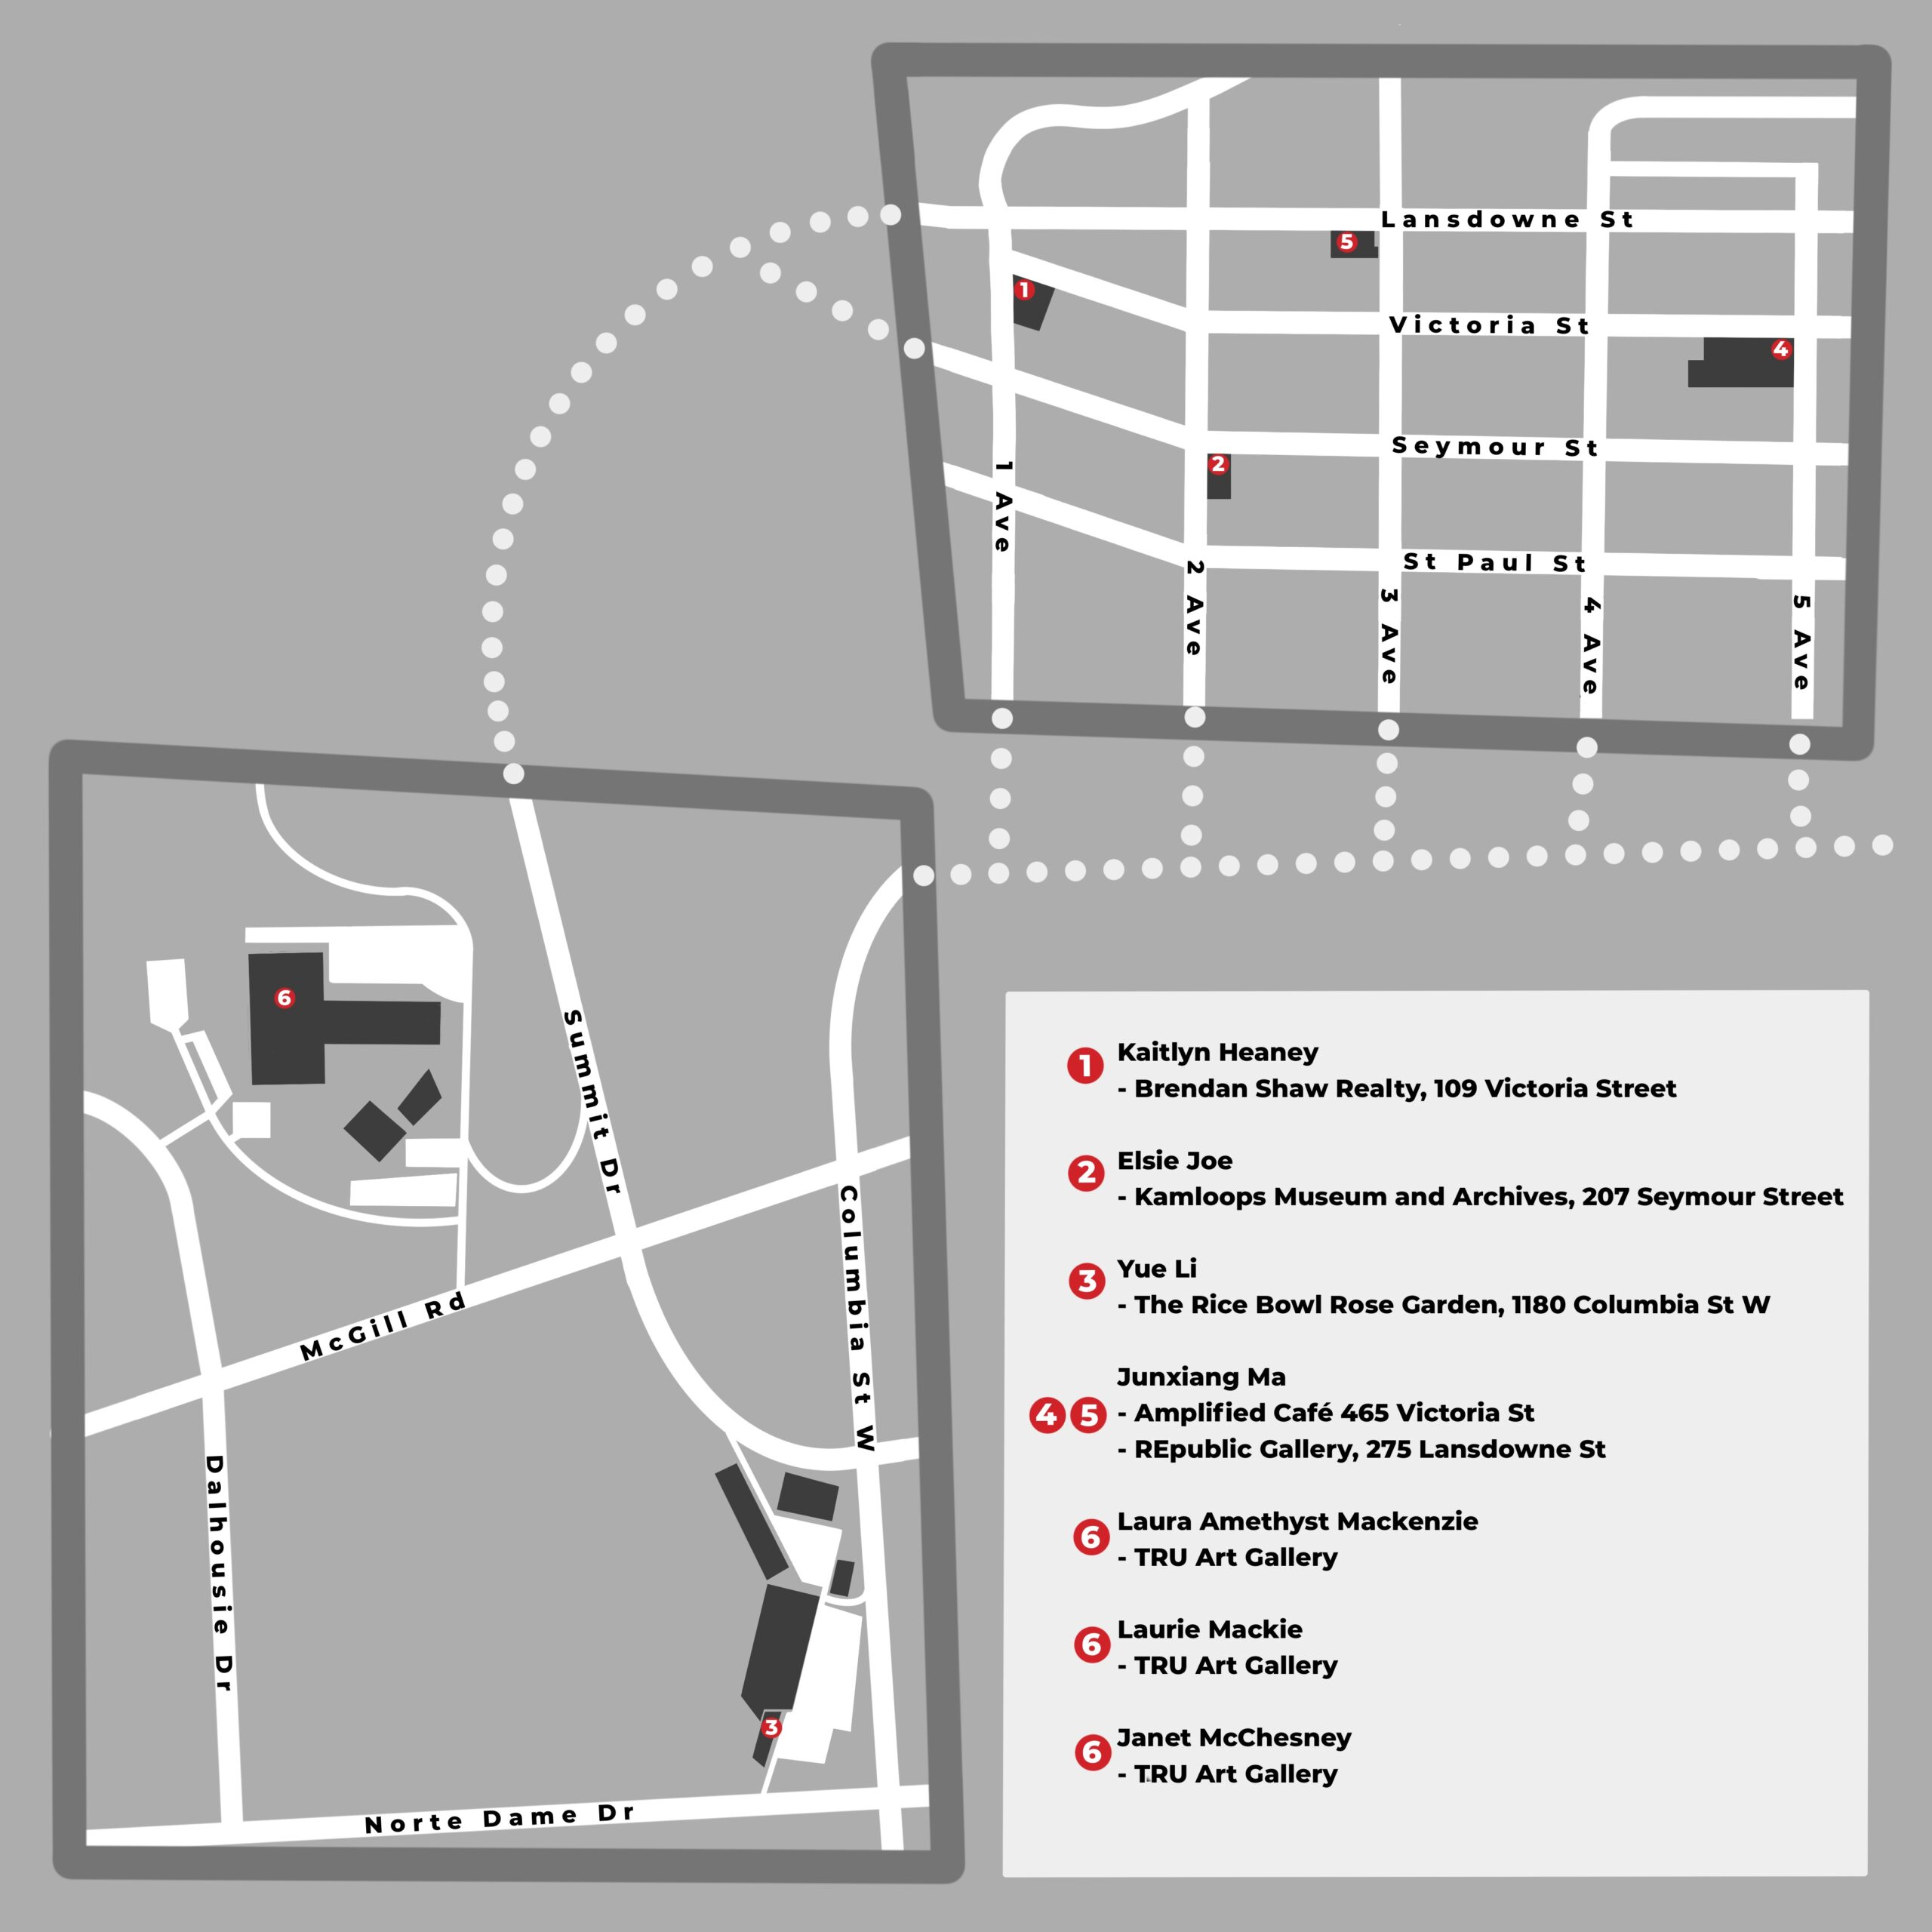 Map of exhibition locations